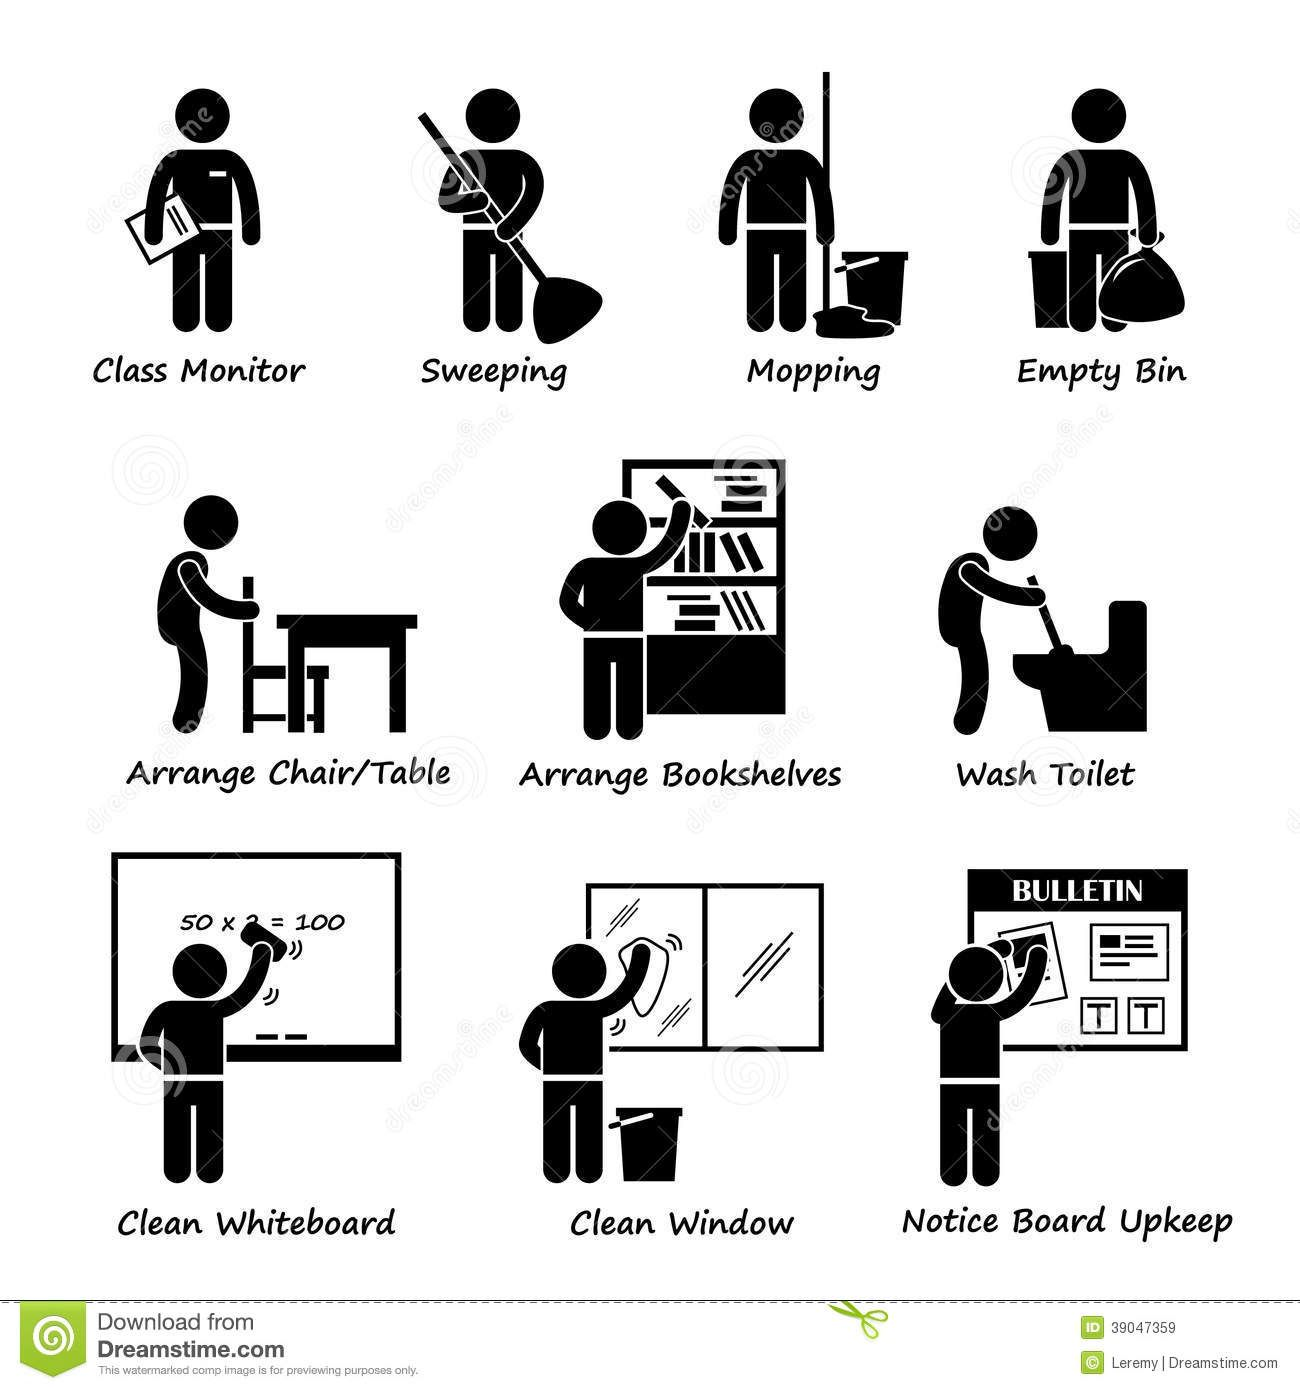 Cleaning clipart class duty. Classroom student roster stock